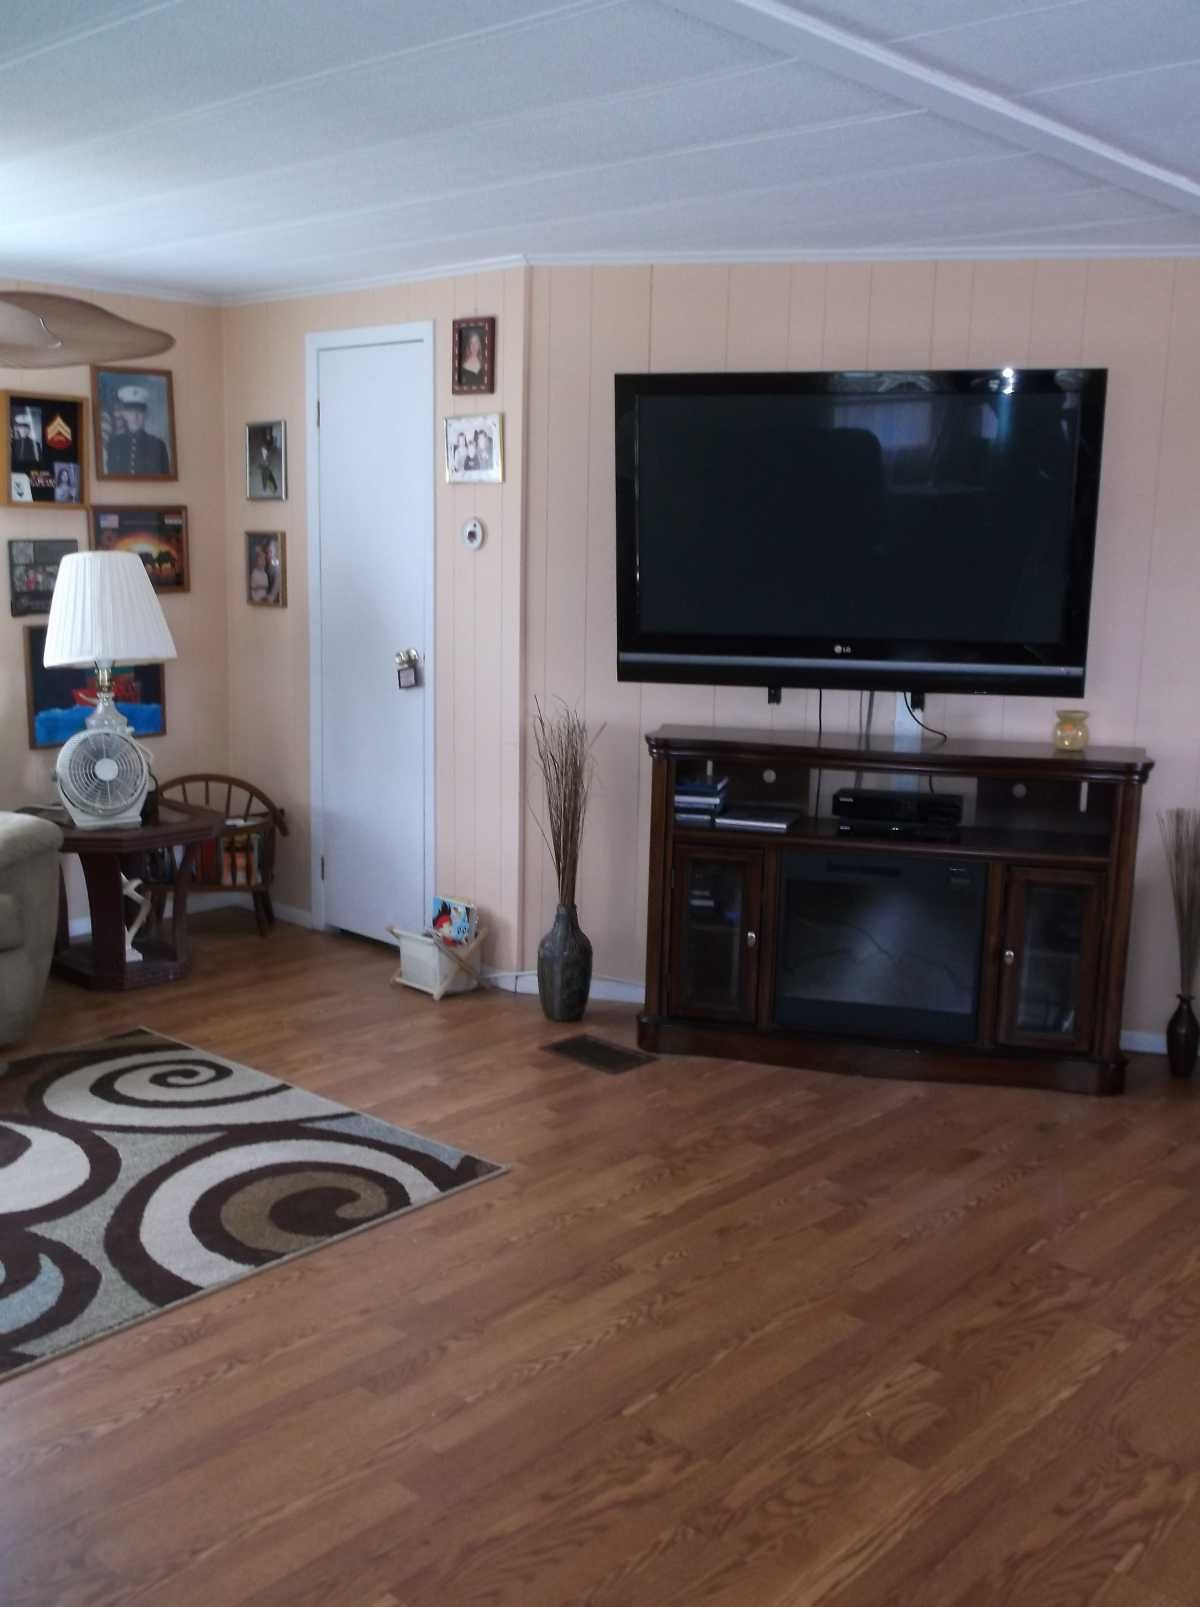 Laminate floors 1981 BUDD Mobile / Manufactured Home in